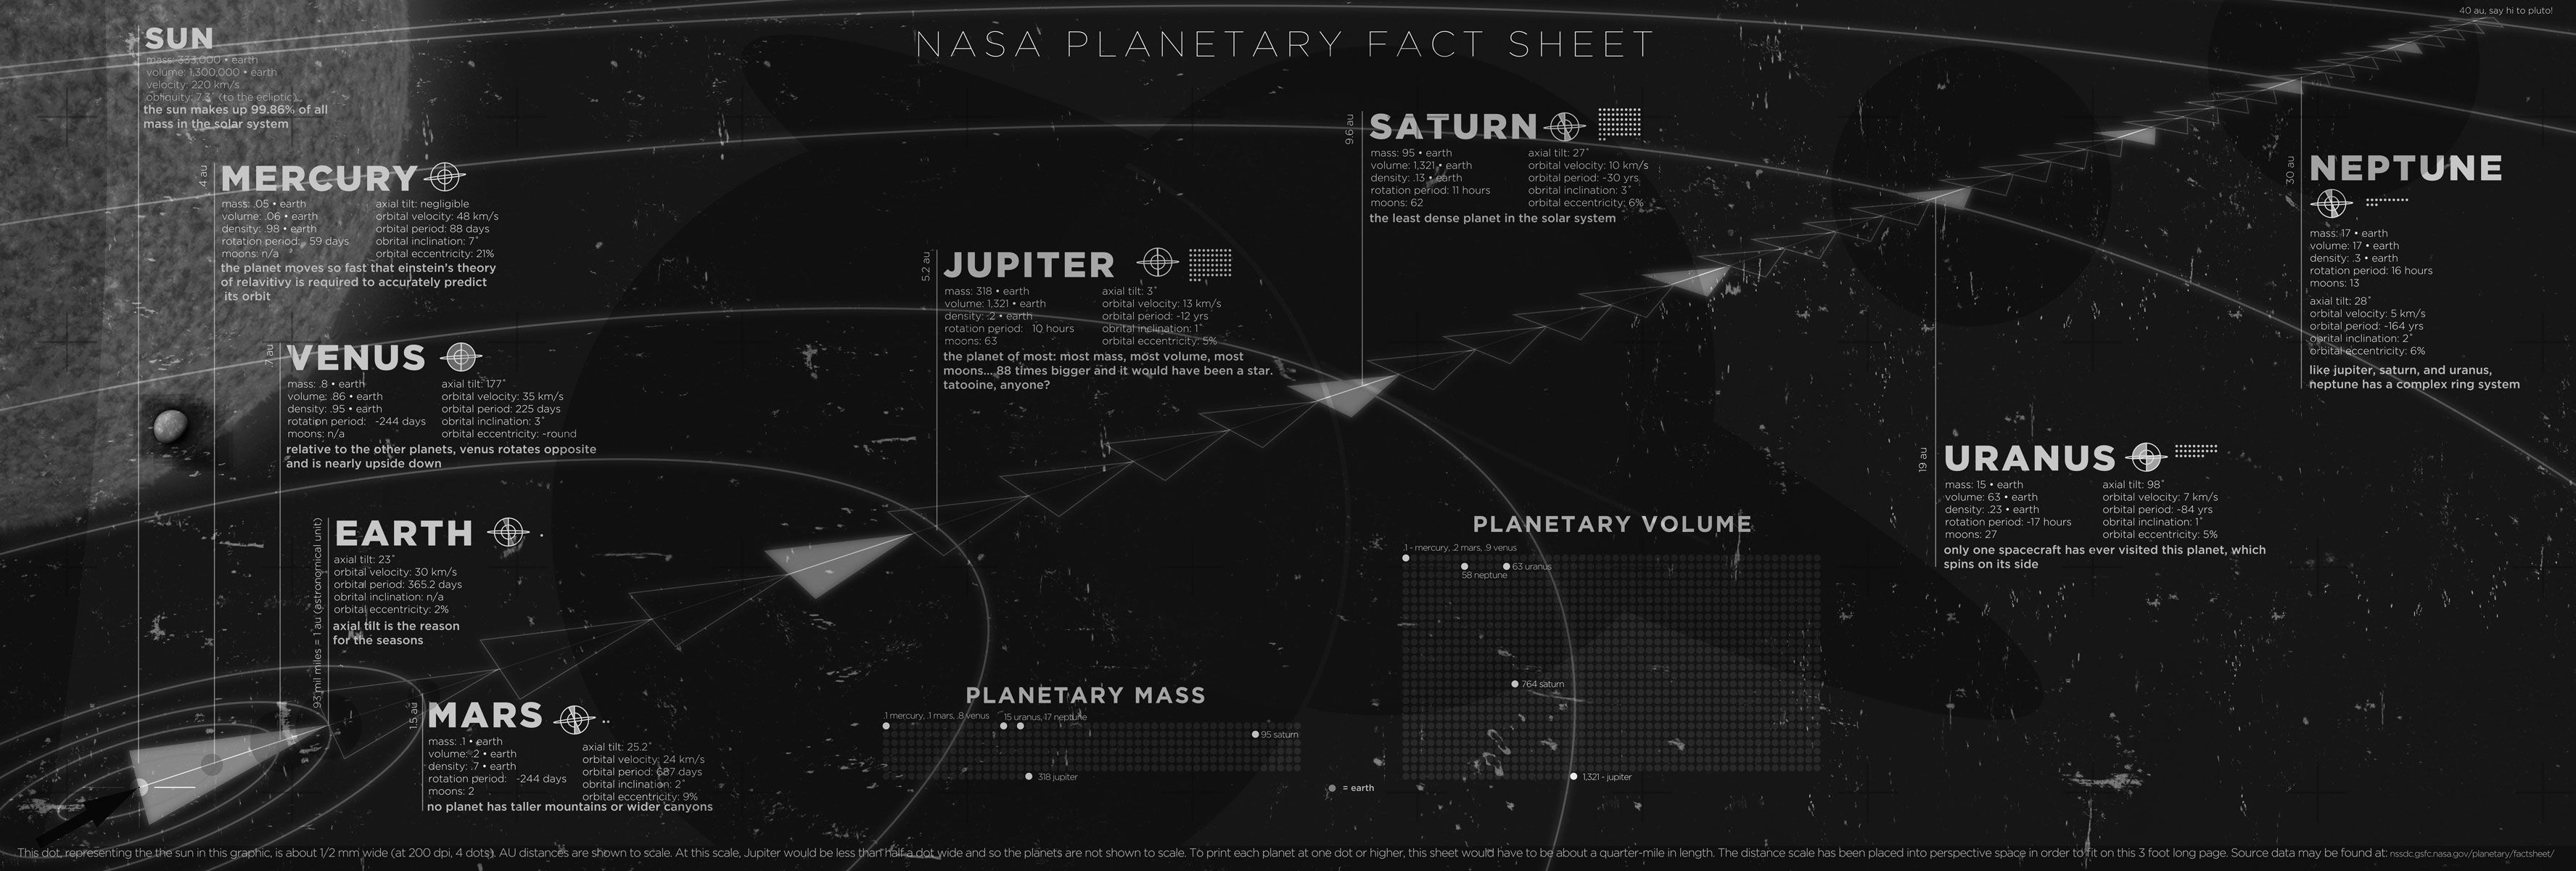 nasa planetary fact sheet - HD 3551×1200